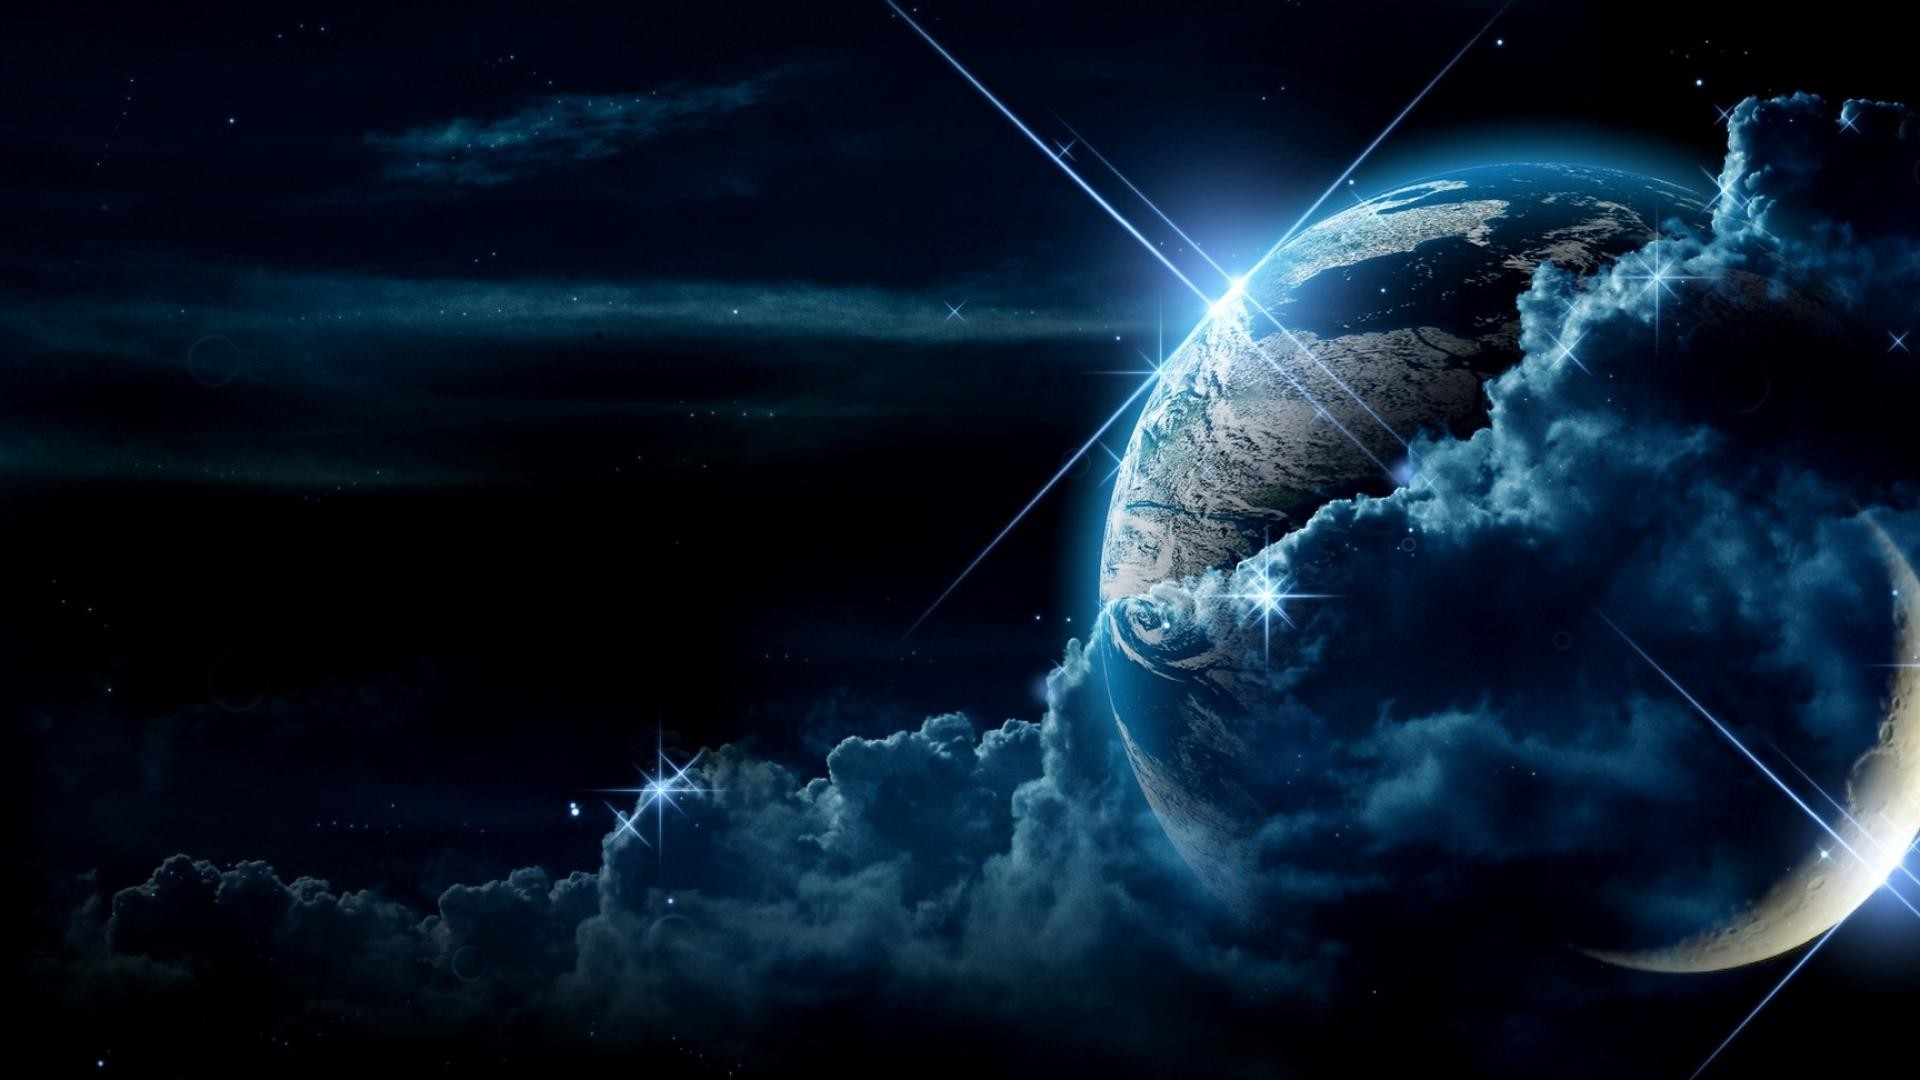 Hd Space Wallpapers 80 Background Pictures